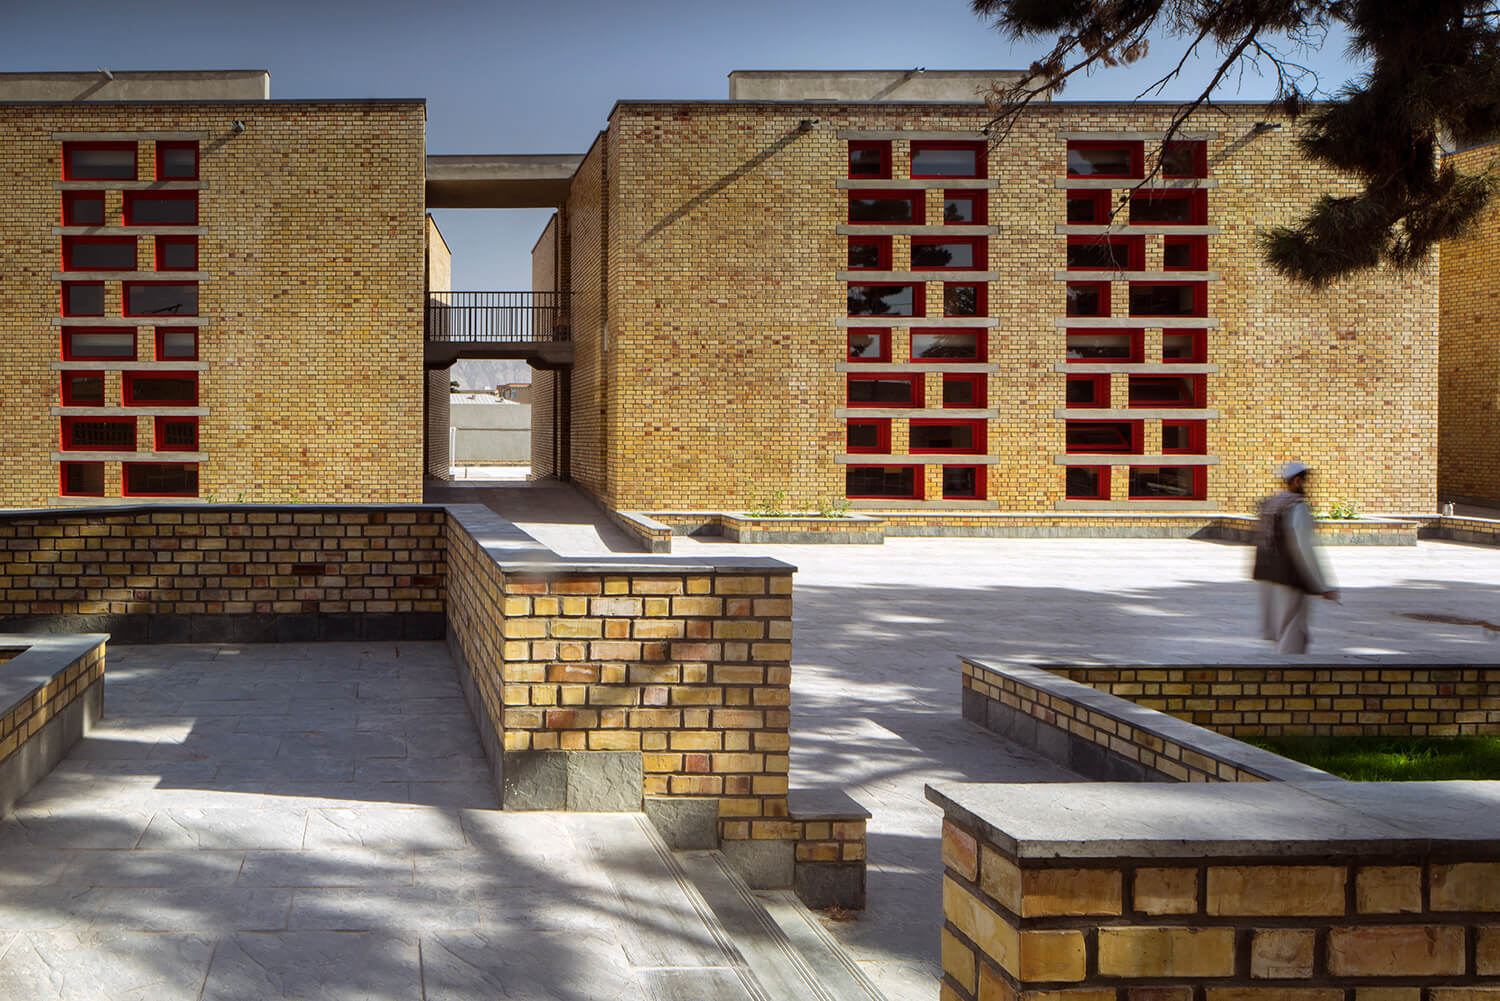 The Gohar Khatoon Girls School in Afghanistan takes its cues from the rich cultural and architectural heritage of Mazar-i-Sharif  |Yasaman Esmaili | Studio Chahar | STIRworld